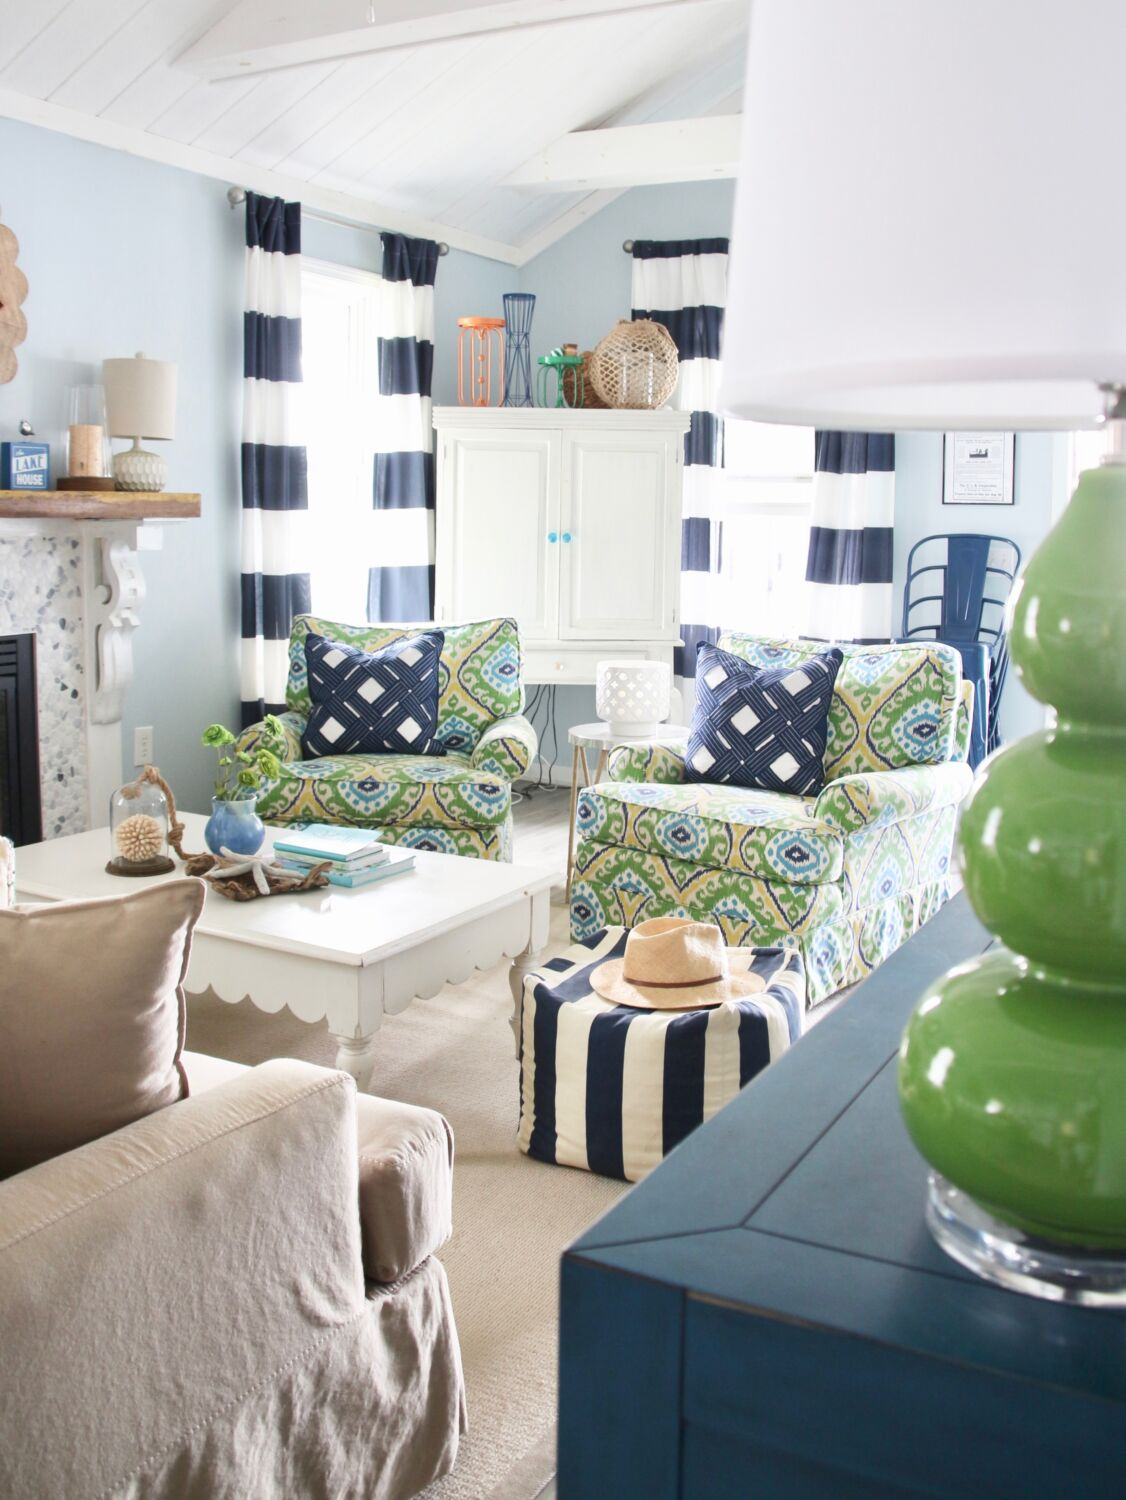 Lake Home Decor Making A Splash Down At The Lake With New Nautical Decor